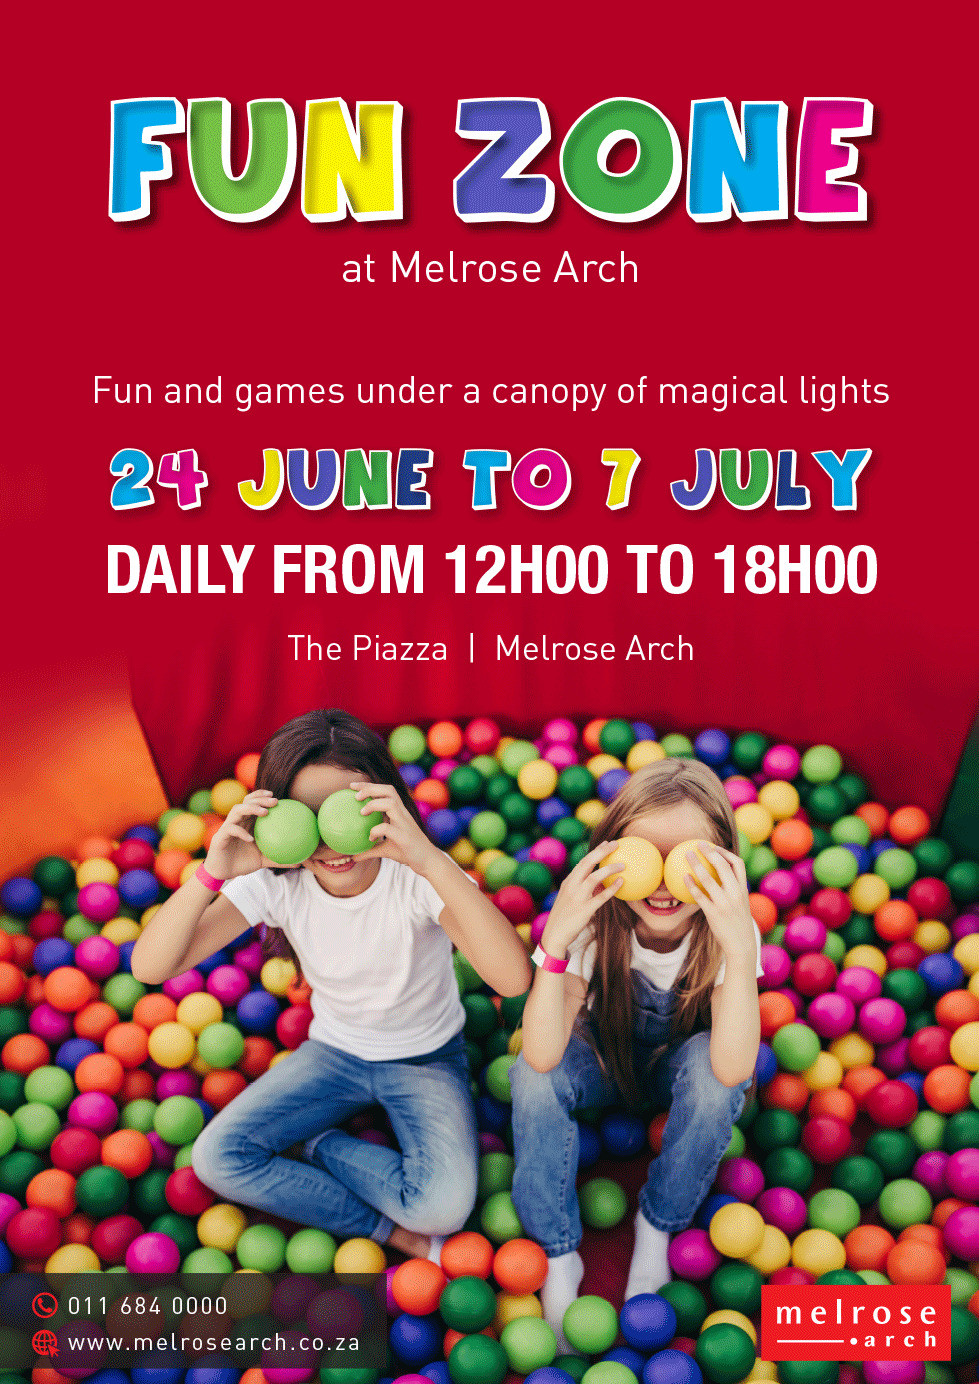 MELROSE ARCH'S FUN ZONE HAS EVERYTHING KIDS WANT THIS HOLIDAY